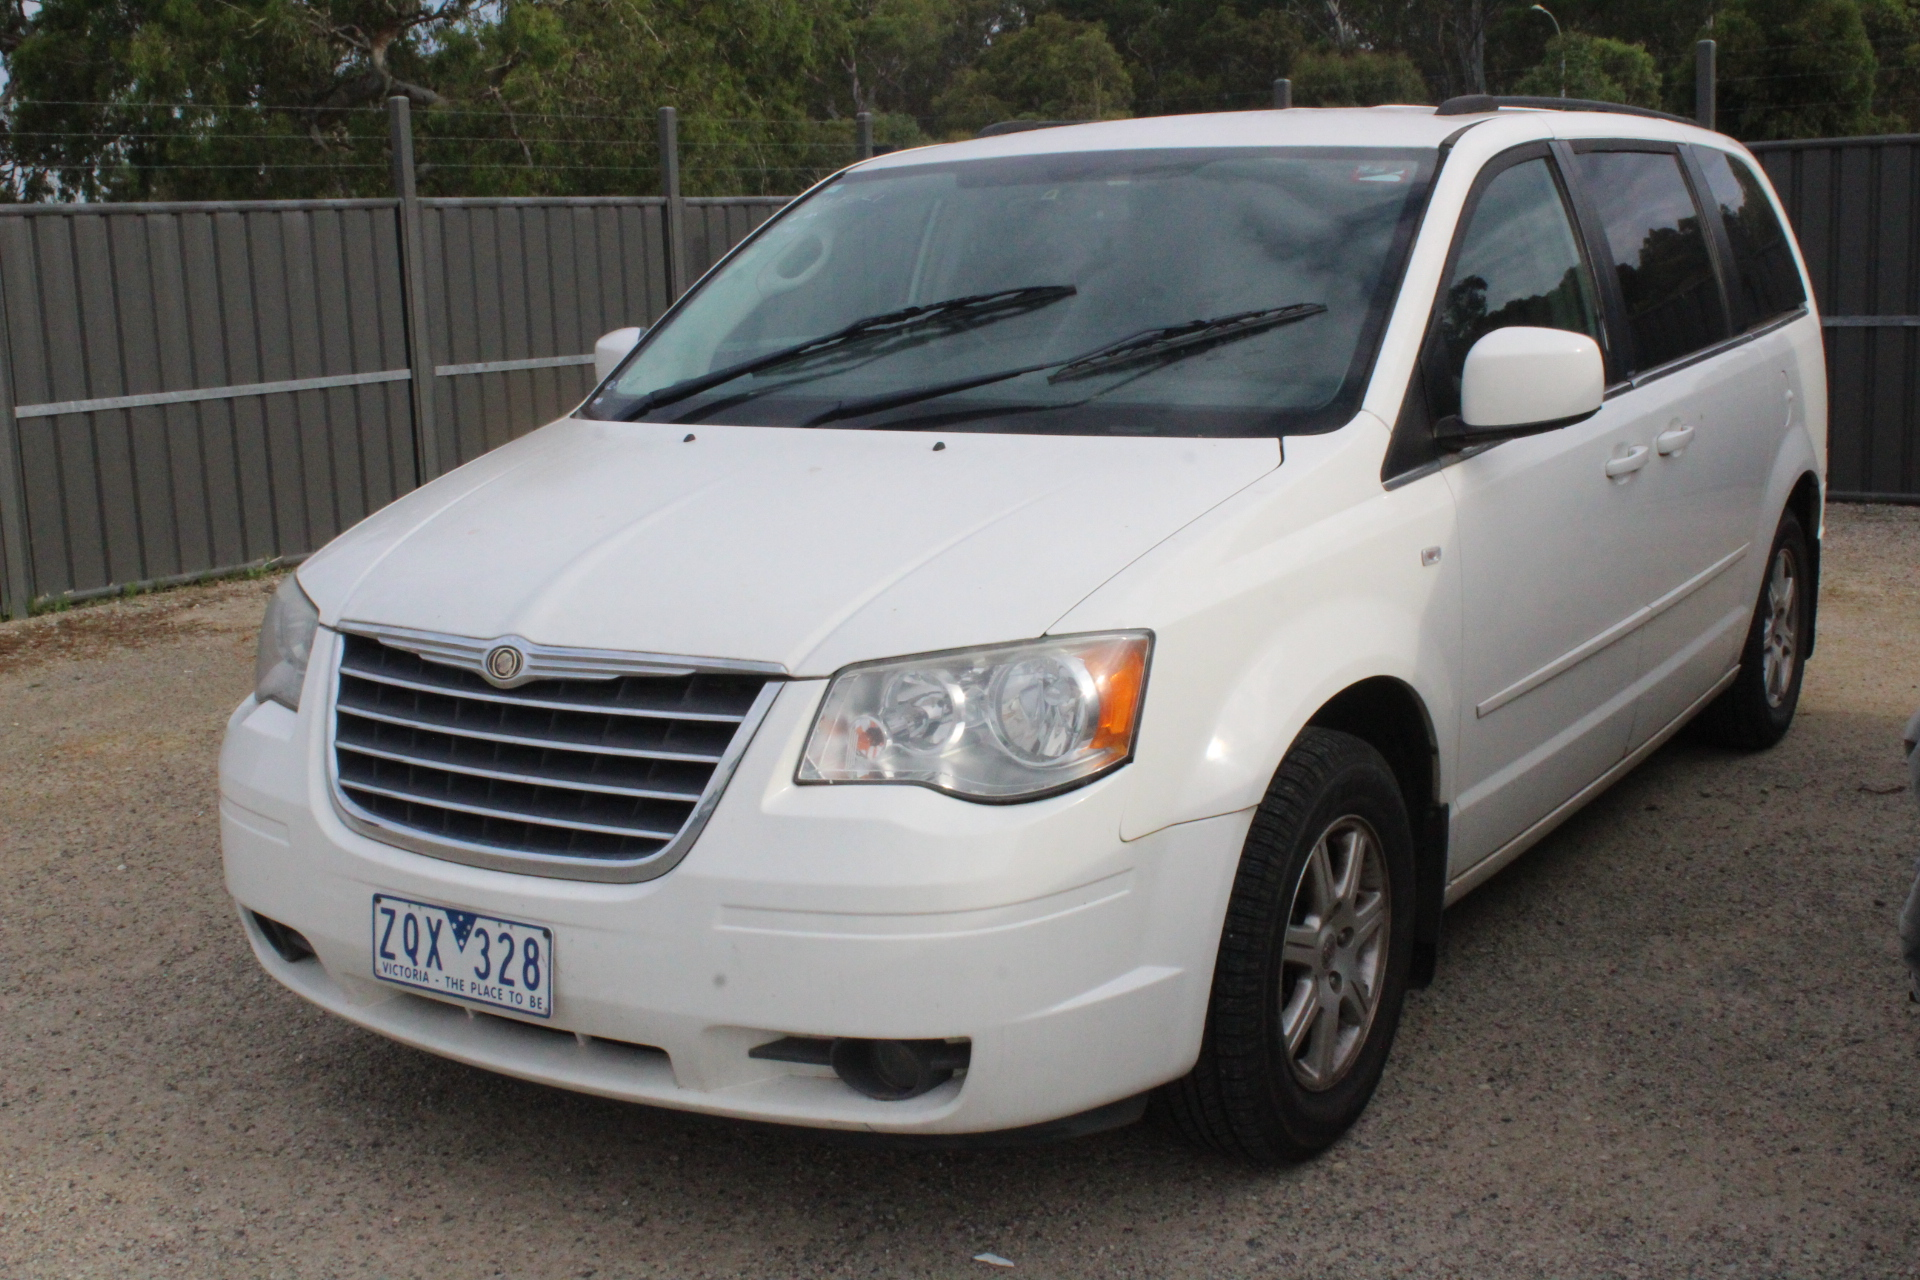 2008 Chrysler Grand Voyager Touring RT Turbo Diesel Automatic